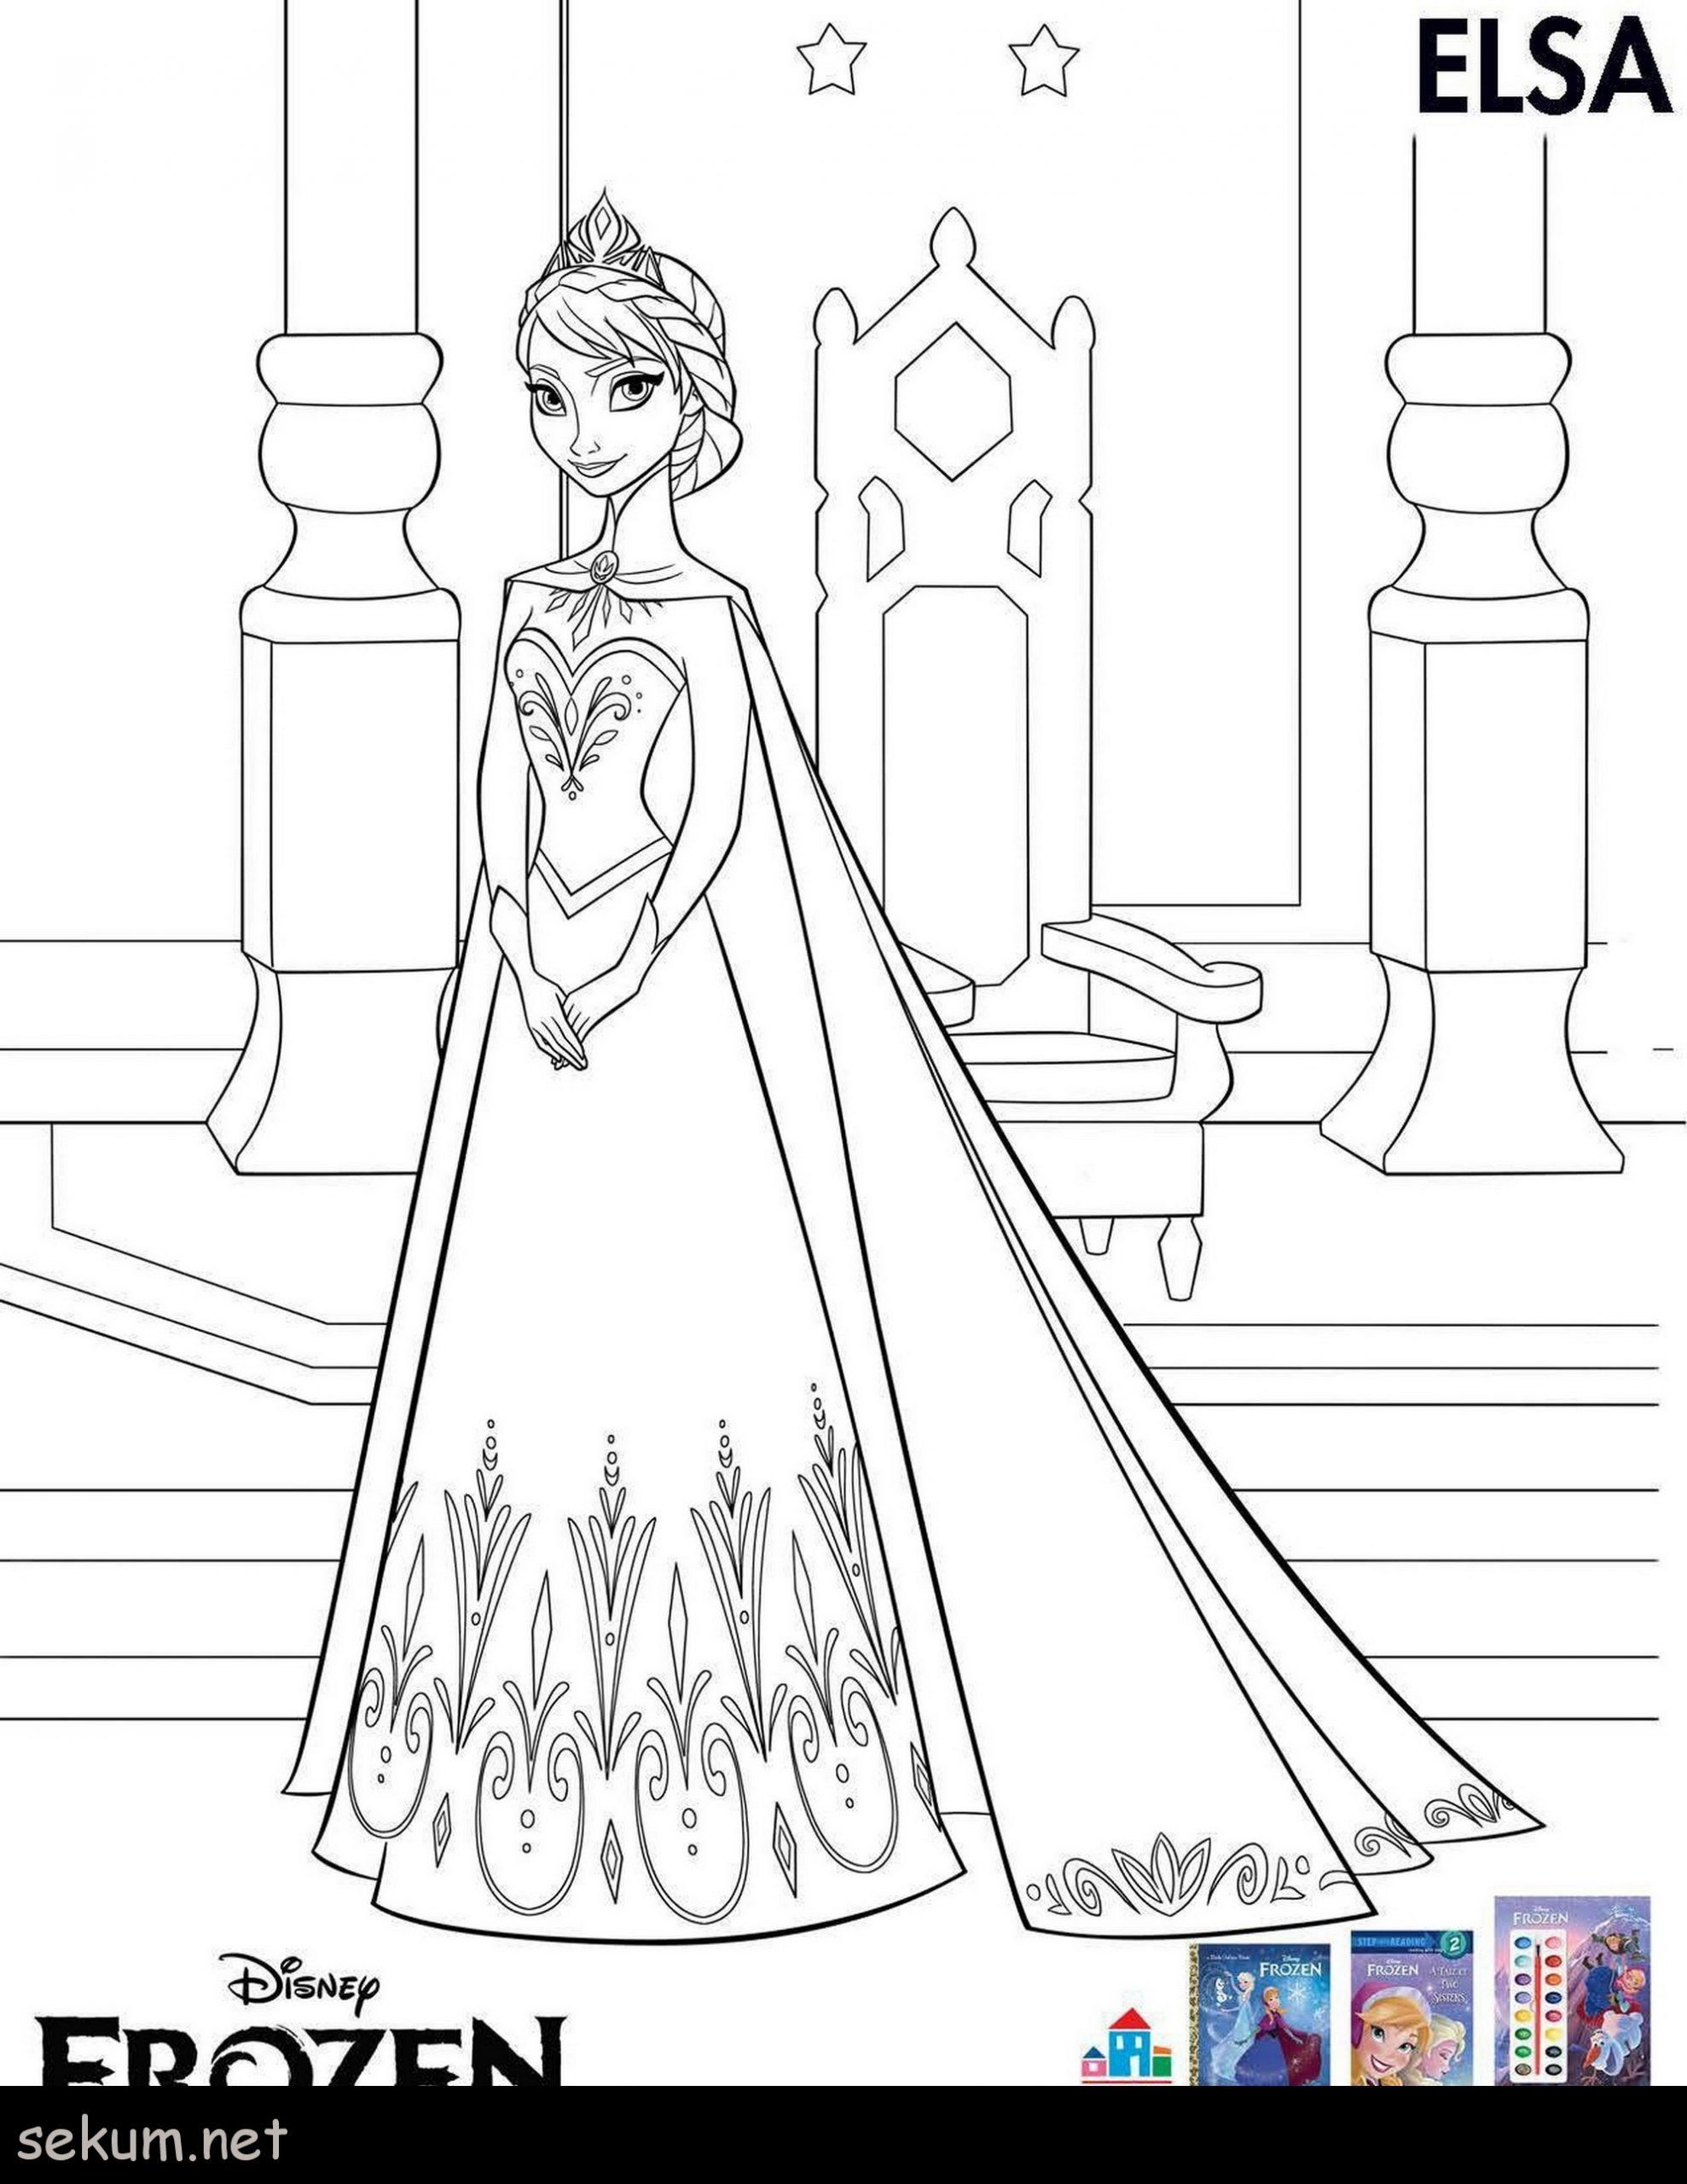 Coloring Pages To Print Frozen Coloring Book Elsa Frozen Coloring Pages To Print Free Pdf In 2020 Frozen Coloring Pages Elsa Coloring Pages Frozen Coloring